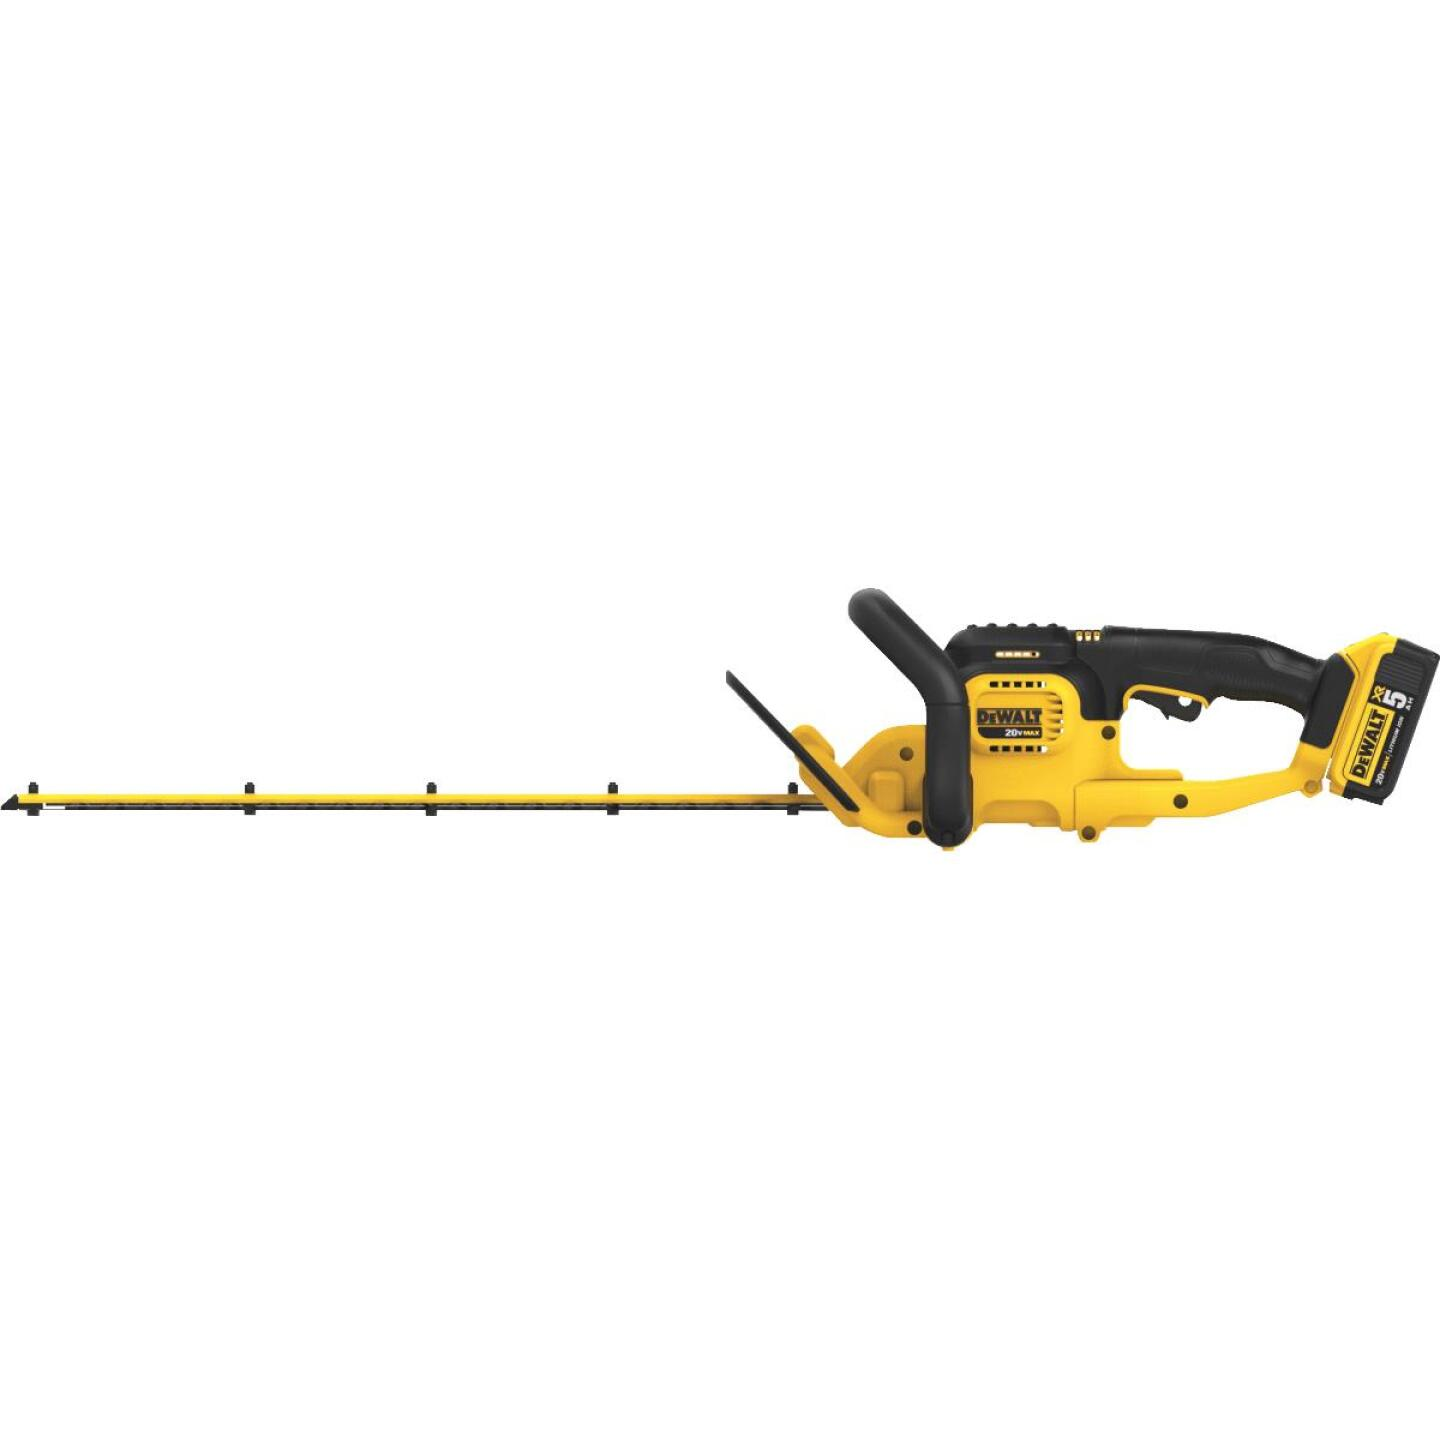 DeWalt 22 In. 20V Lithium Ion Cordless Hedge Trimmer Image 2